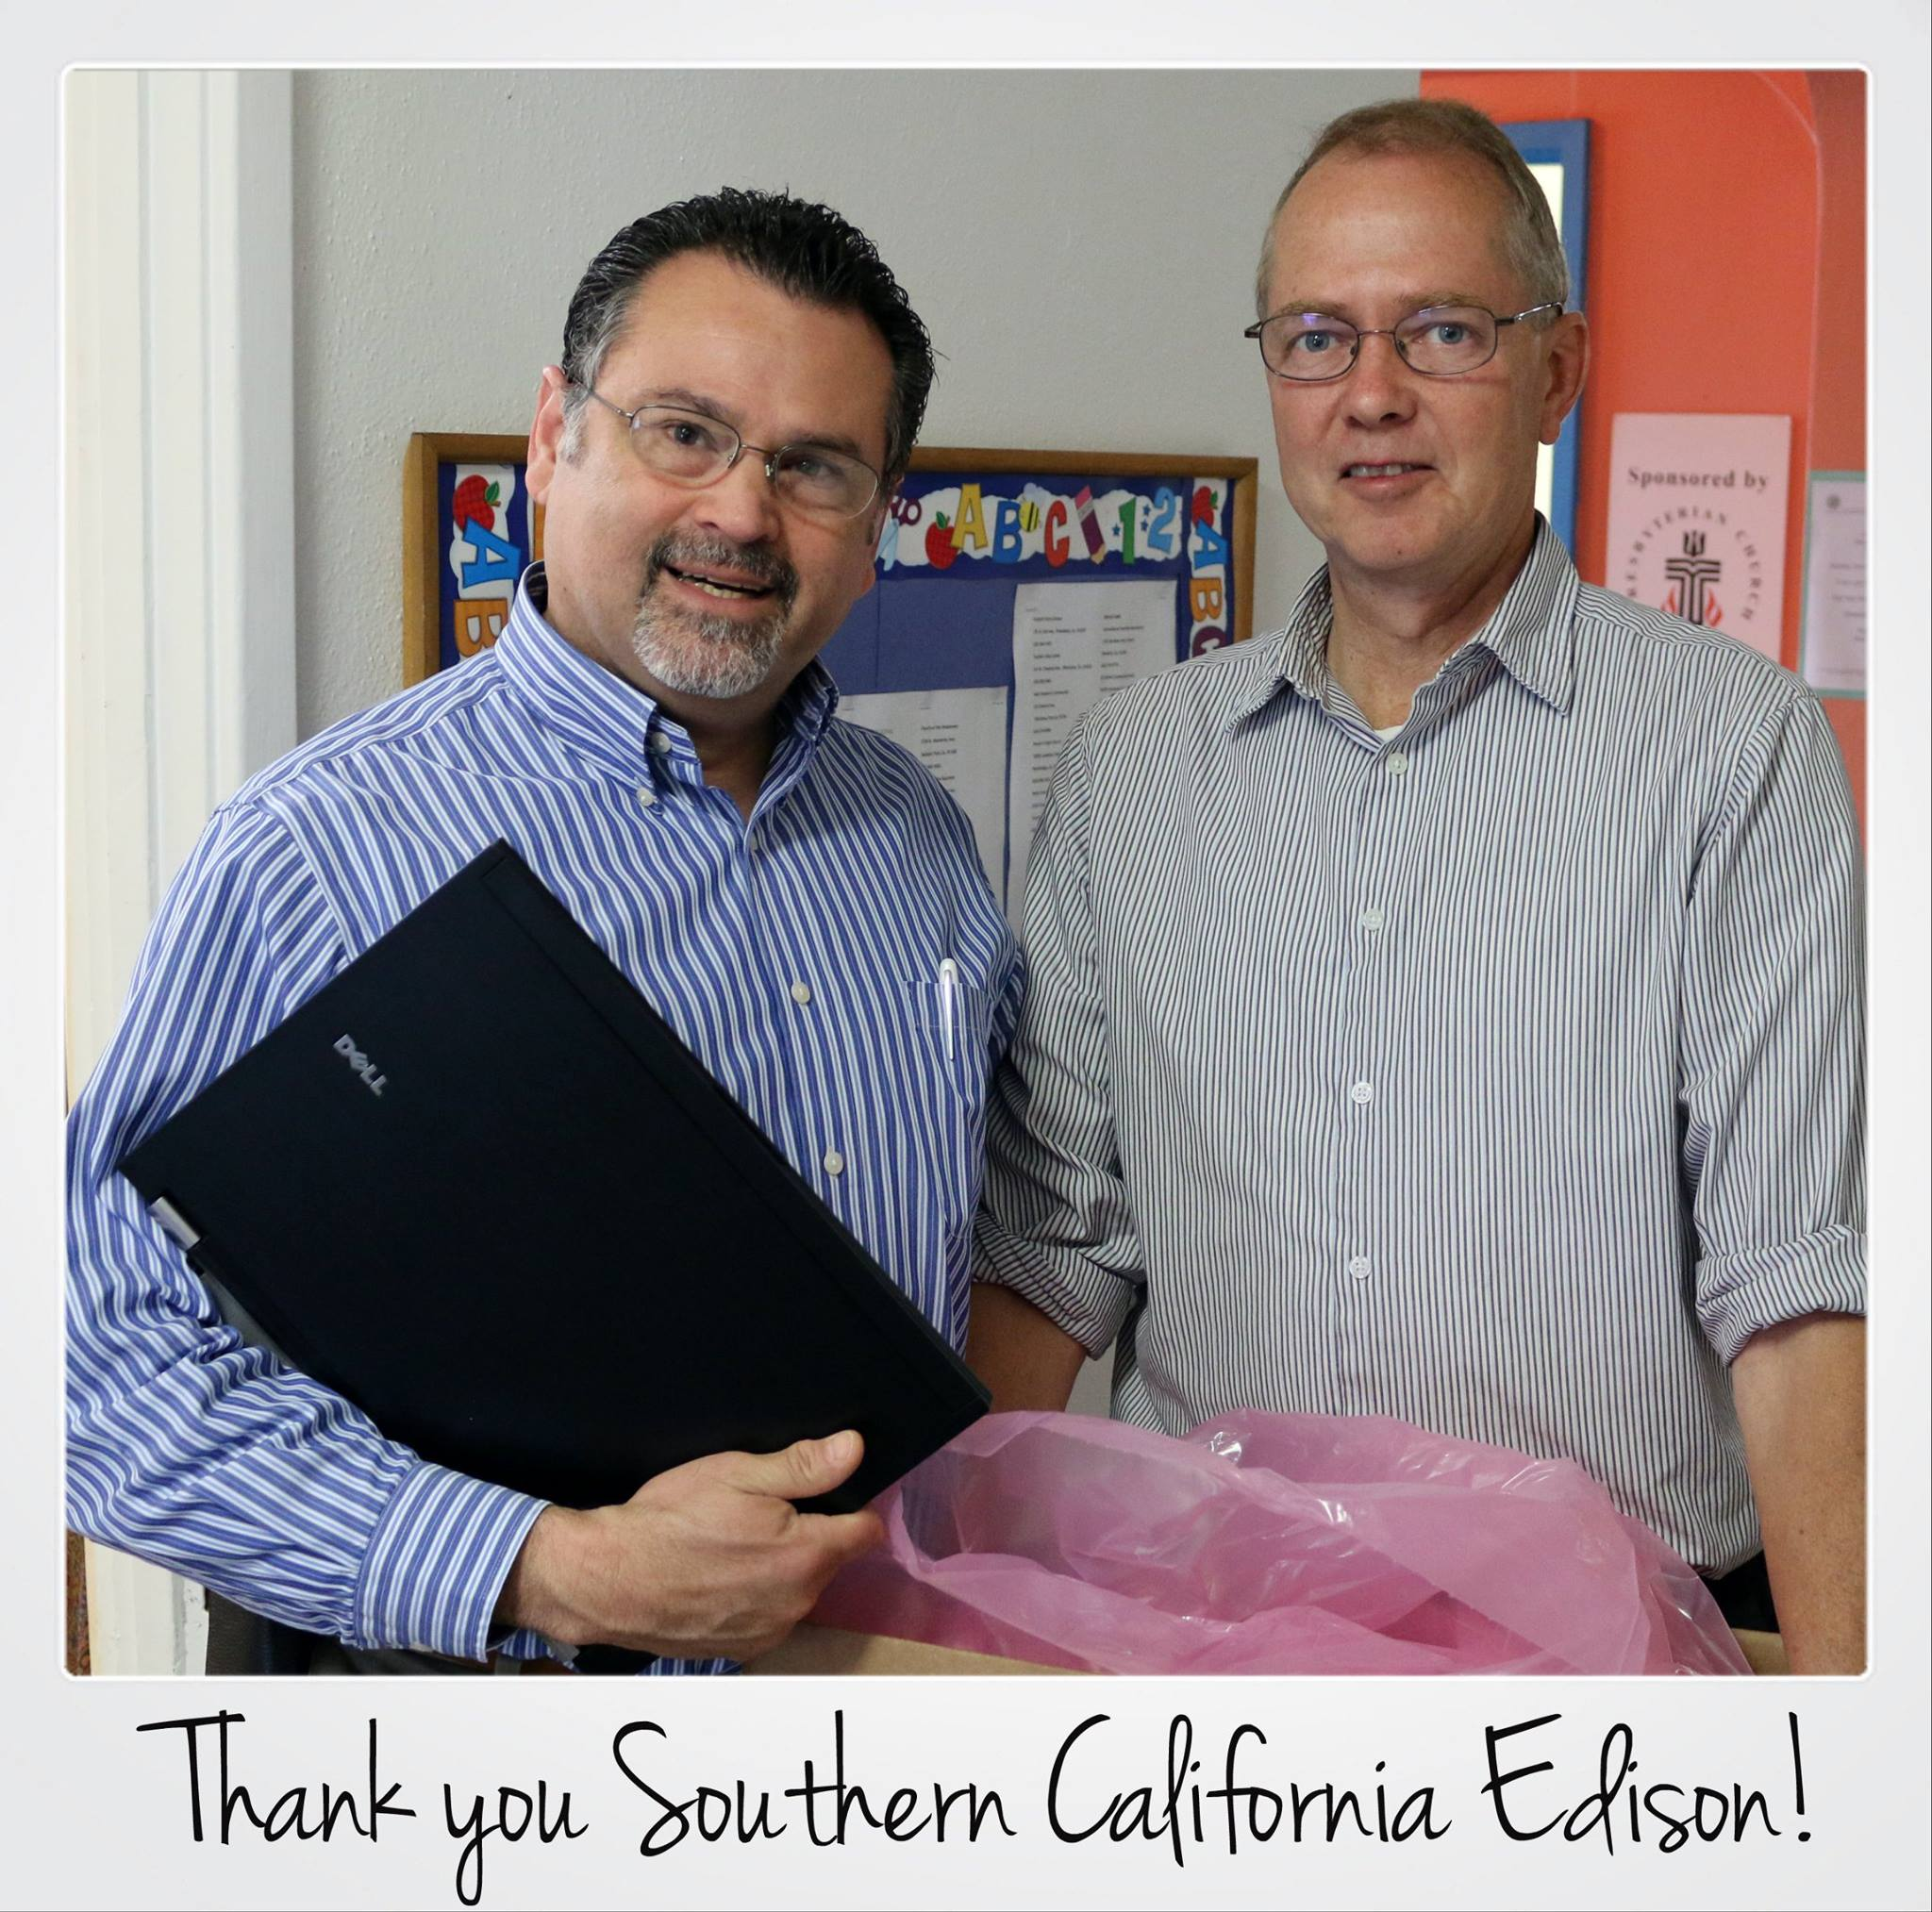 Laptop Donation from Southern California Edison